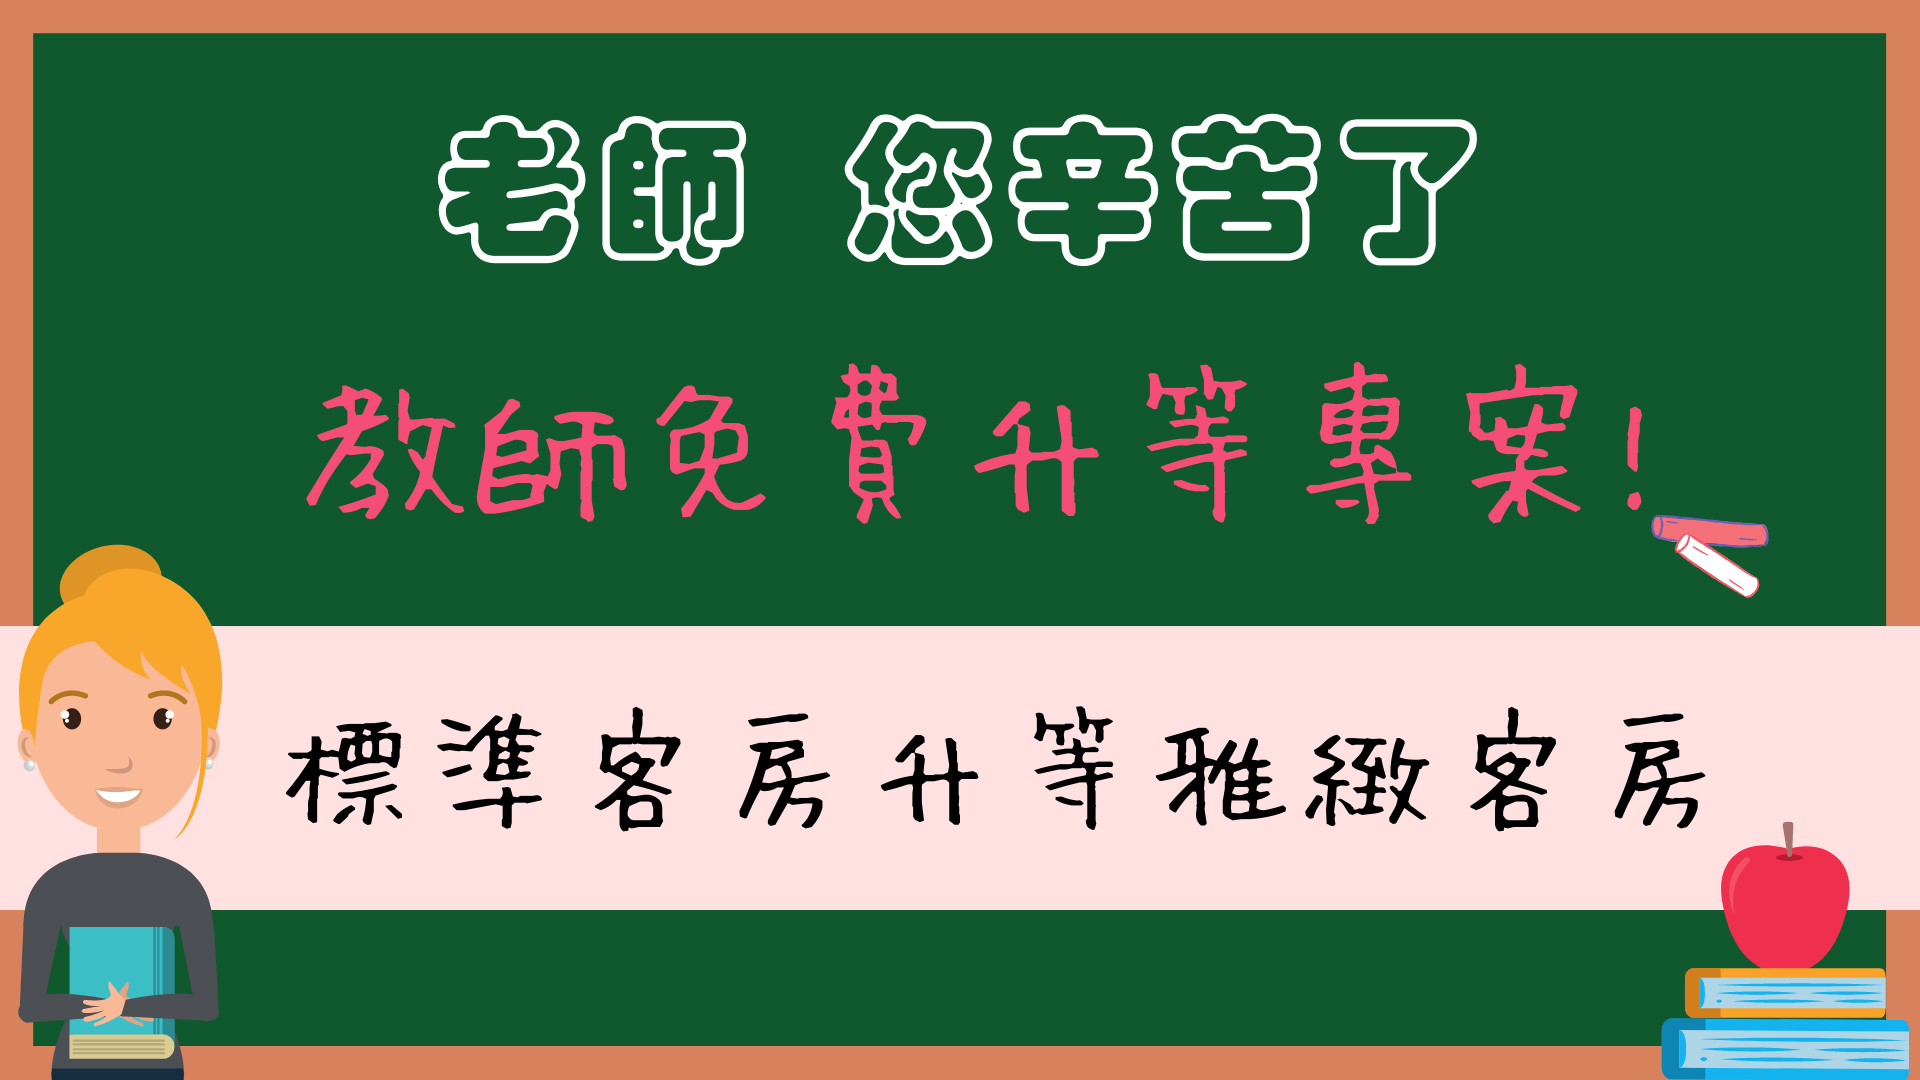 https://booking.taipeiinngroup.com/nv/images/suite/1031.png